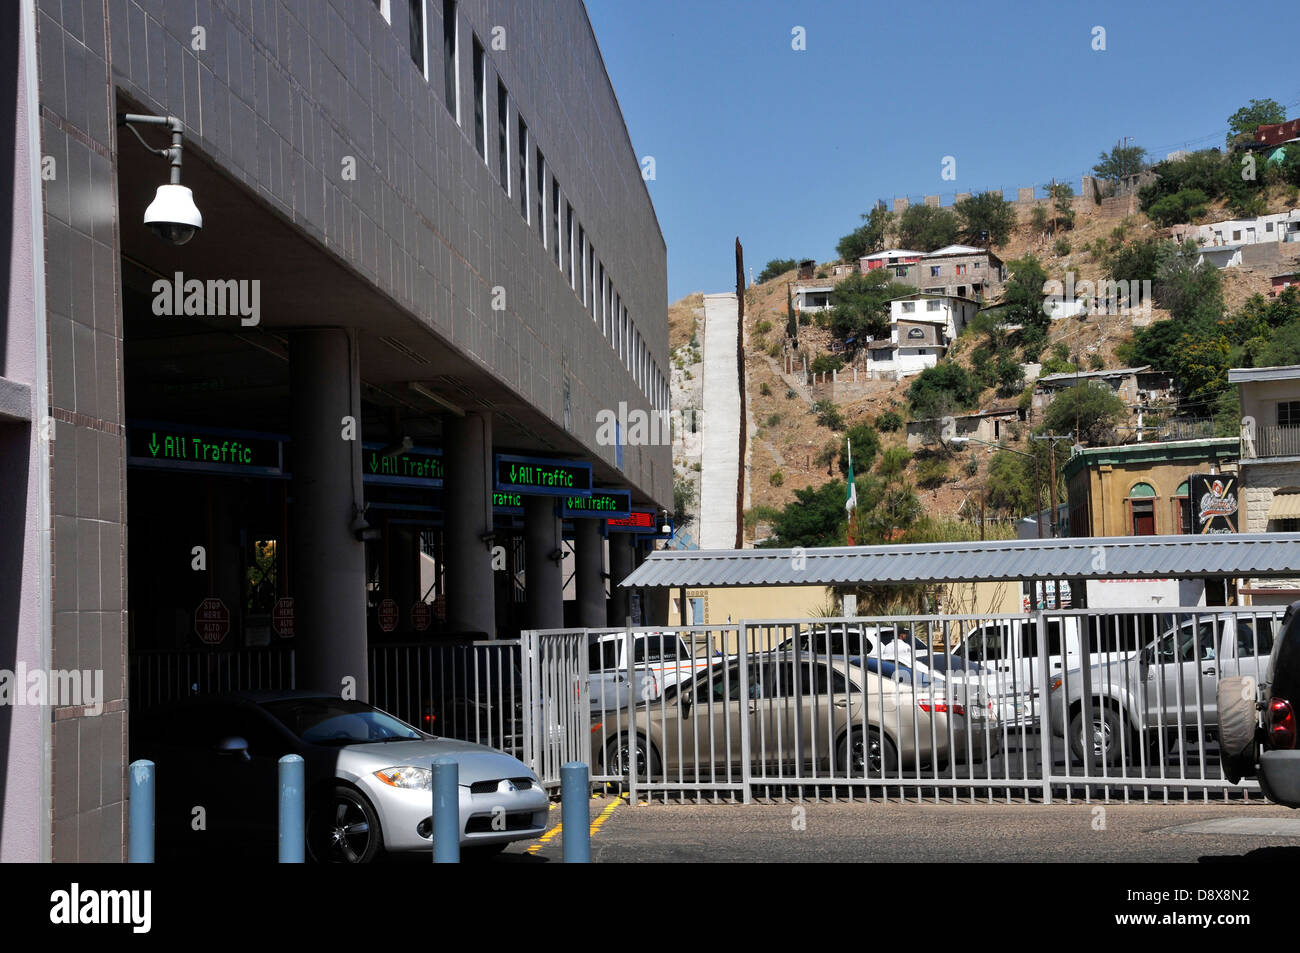 Nogales, Sonora, Mexico, borders the DeConcini Port of Entry customs inspection station at Nogales, Arizona, USA. - Stock Image